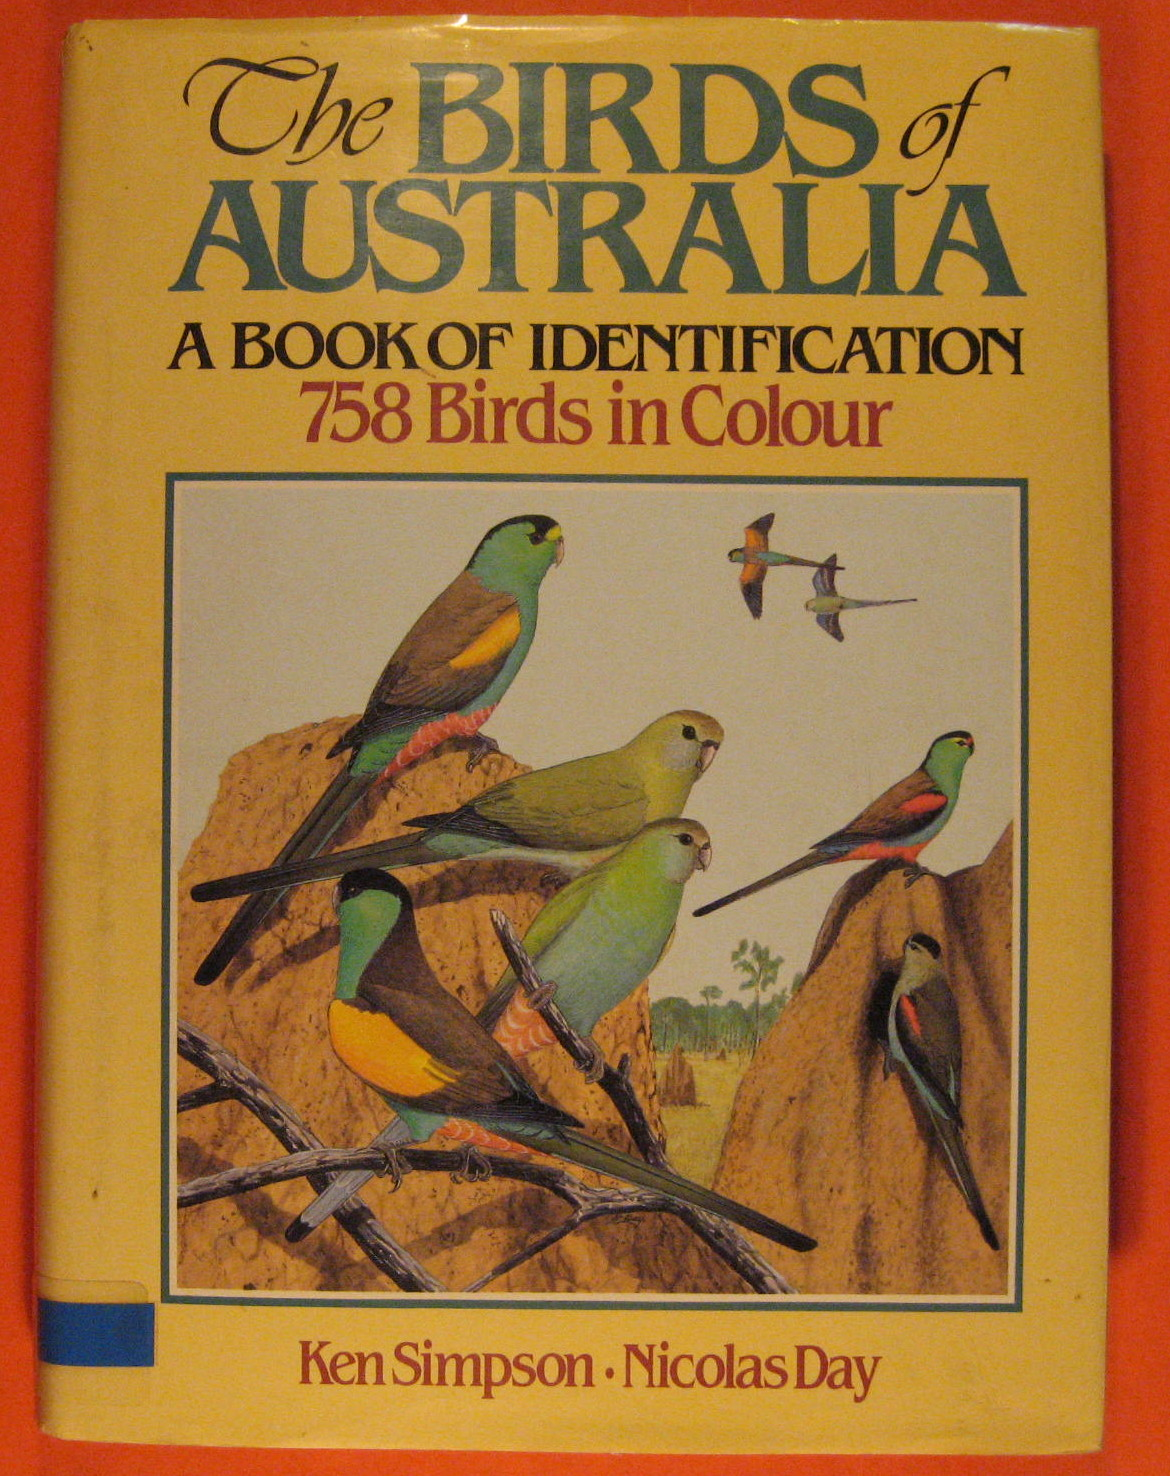 Birds of Australia: A Book of Identification, Simpson, Ken & Nicholas Day